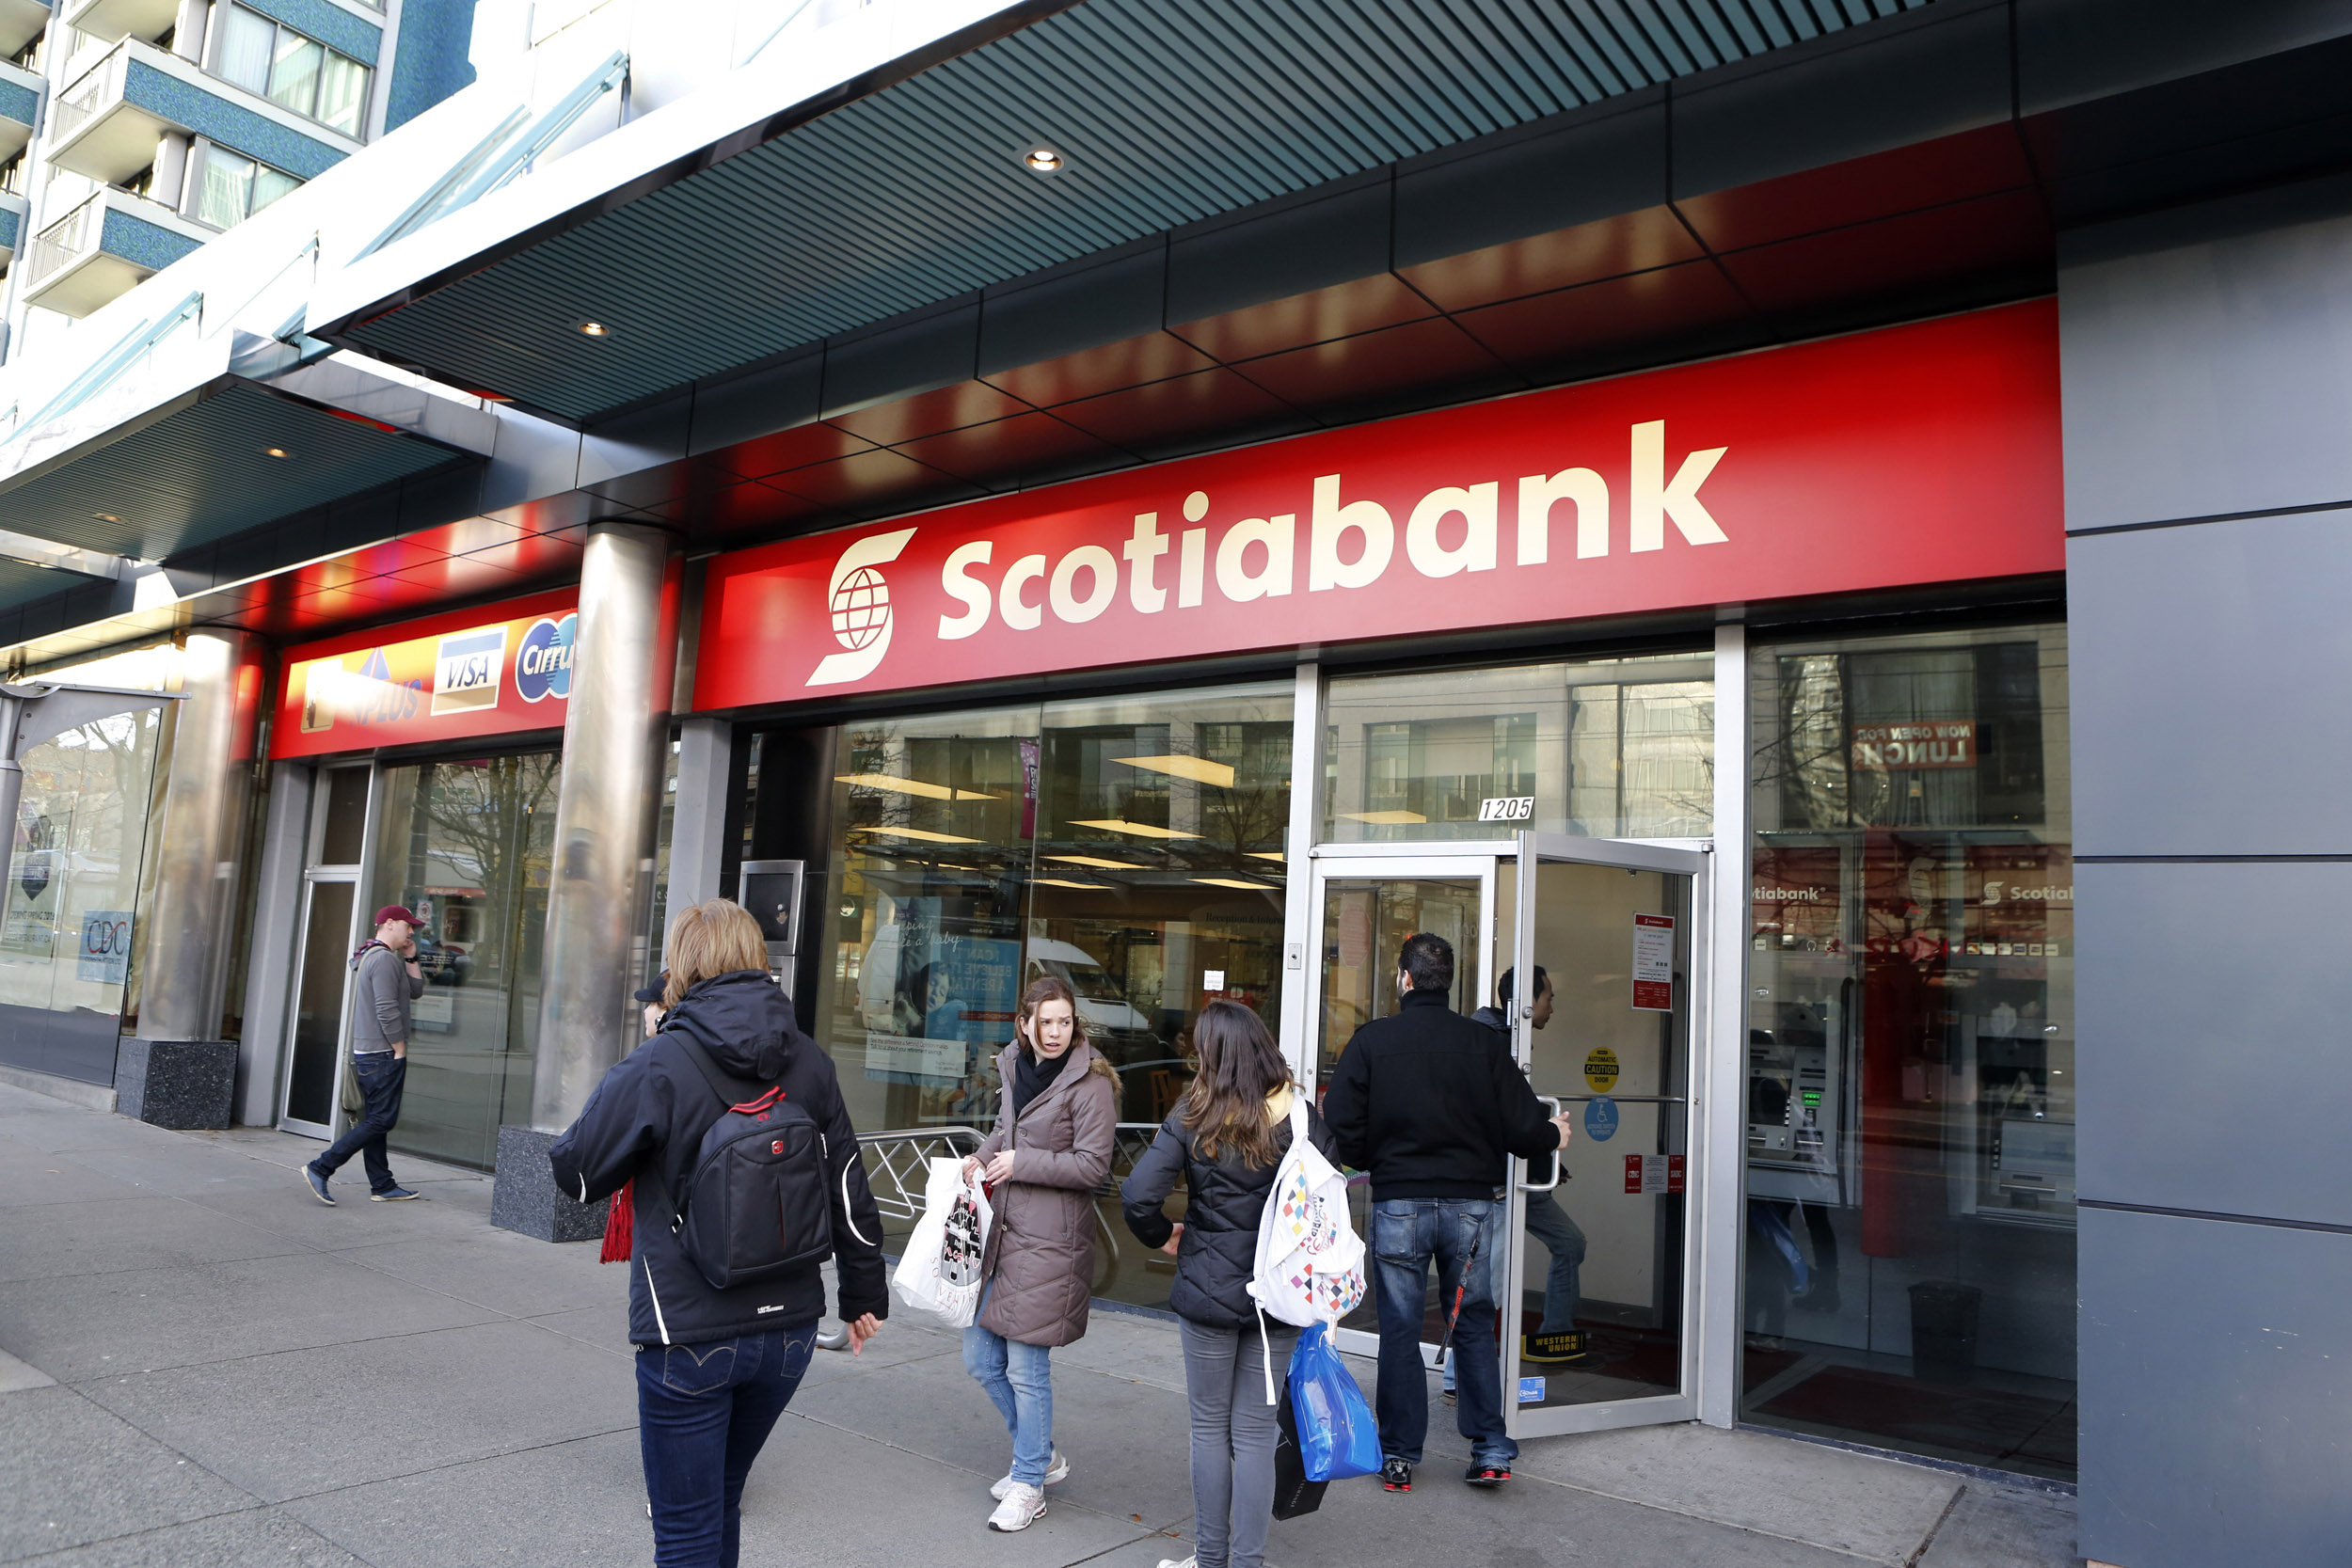 Canada, British Columbia, Vancouver, Scotiabank, logo